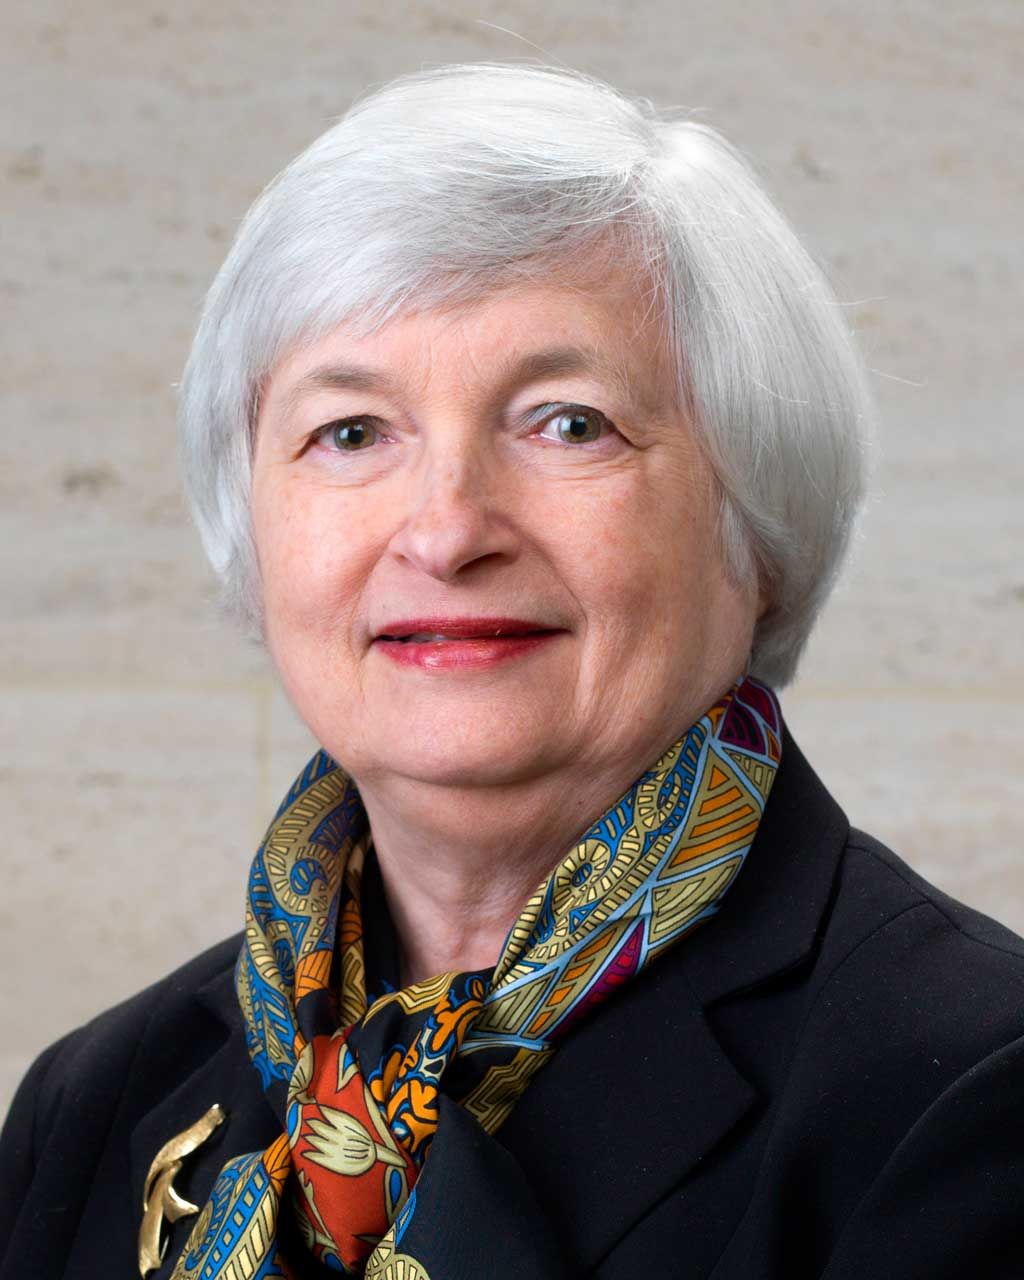 Chair of the Federal Reserve Board Janet L. Yellen is the first woman to hold the position of Chair of the Federal Reserve Board of Governors.